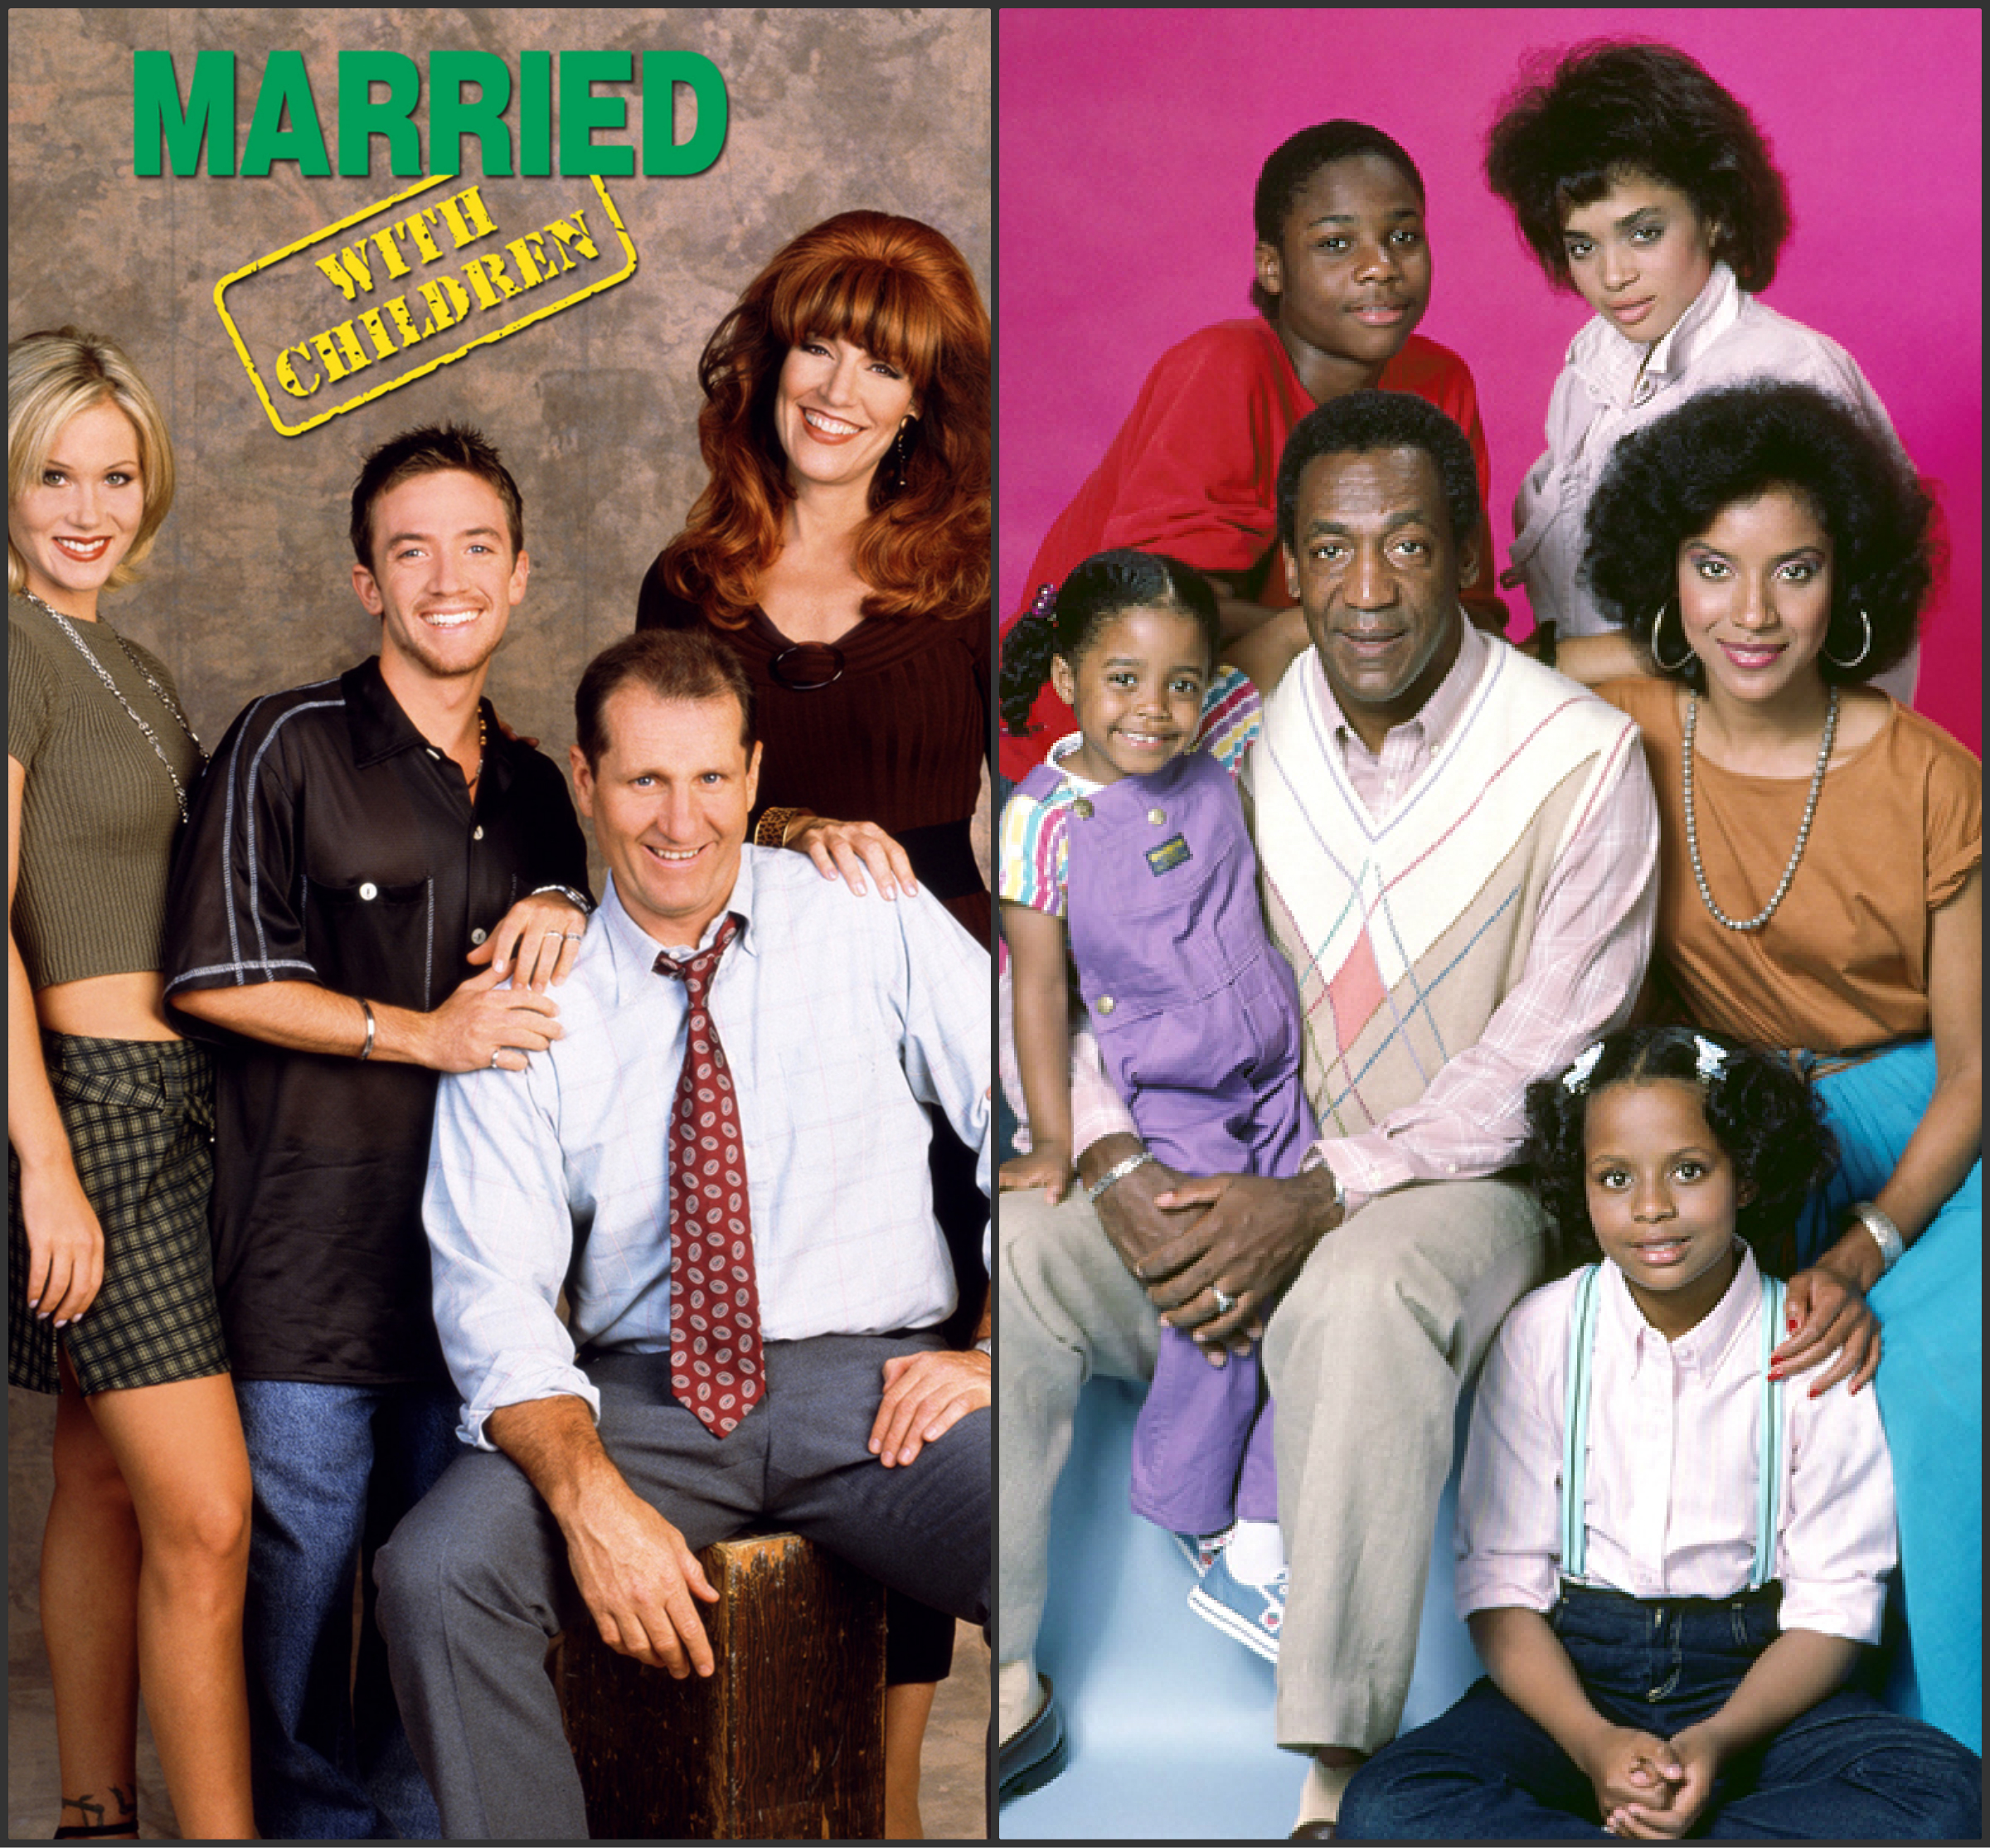 married with children - cosbys